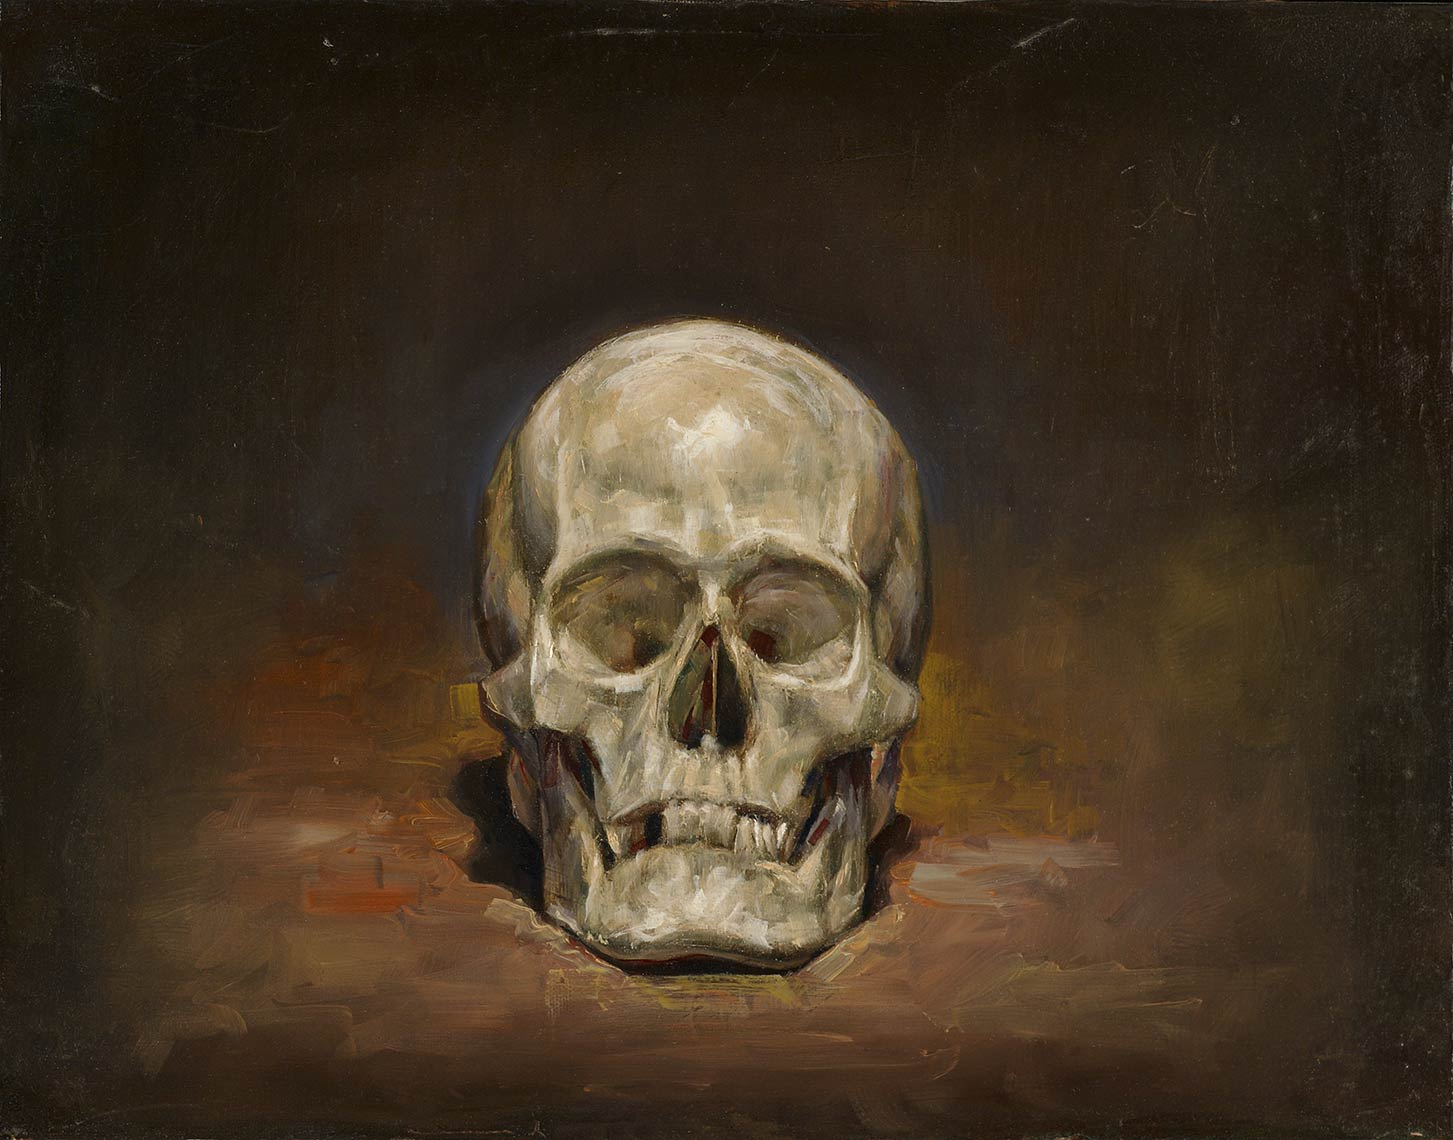 Skull_2009_oil-on-canvas_36x46_14x18_Private-Collection